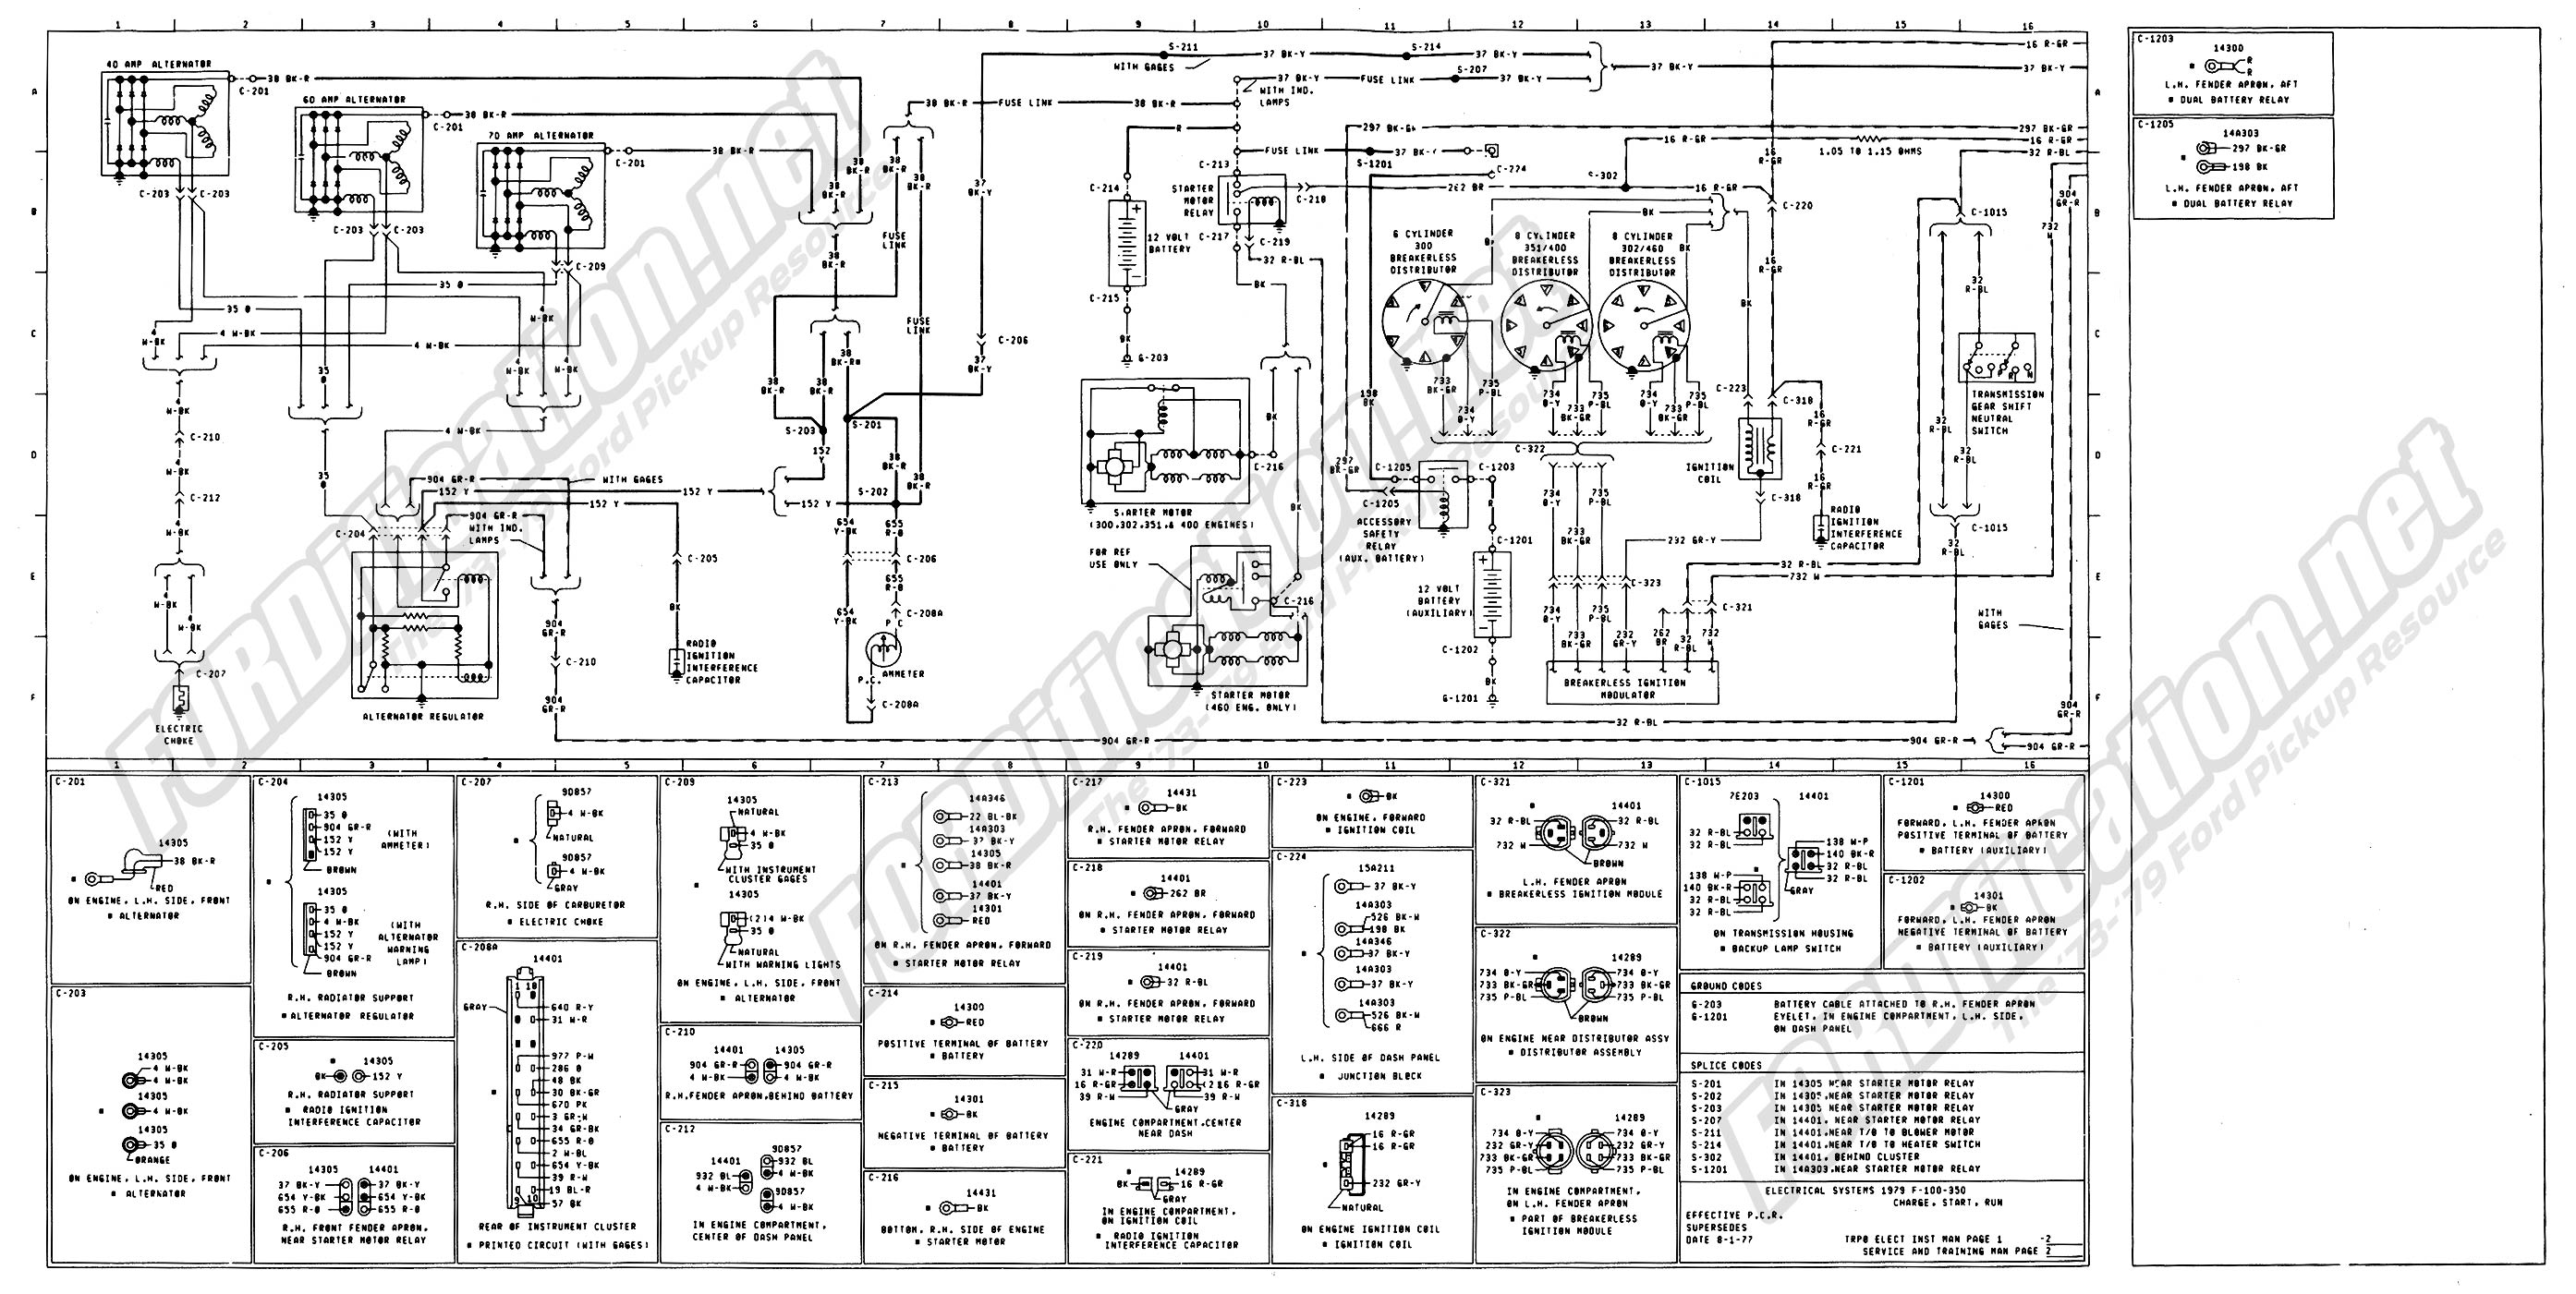 wiring_79master_2of9 1973 1979 ford truck wiring diagrams & schematics fordification net Chevy Wiring Harness Diagram at aneh.co